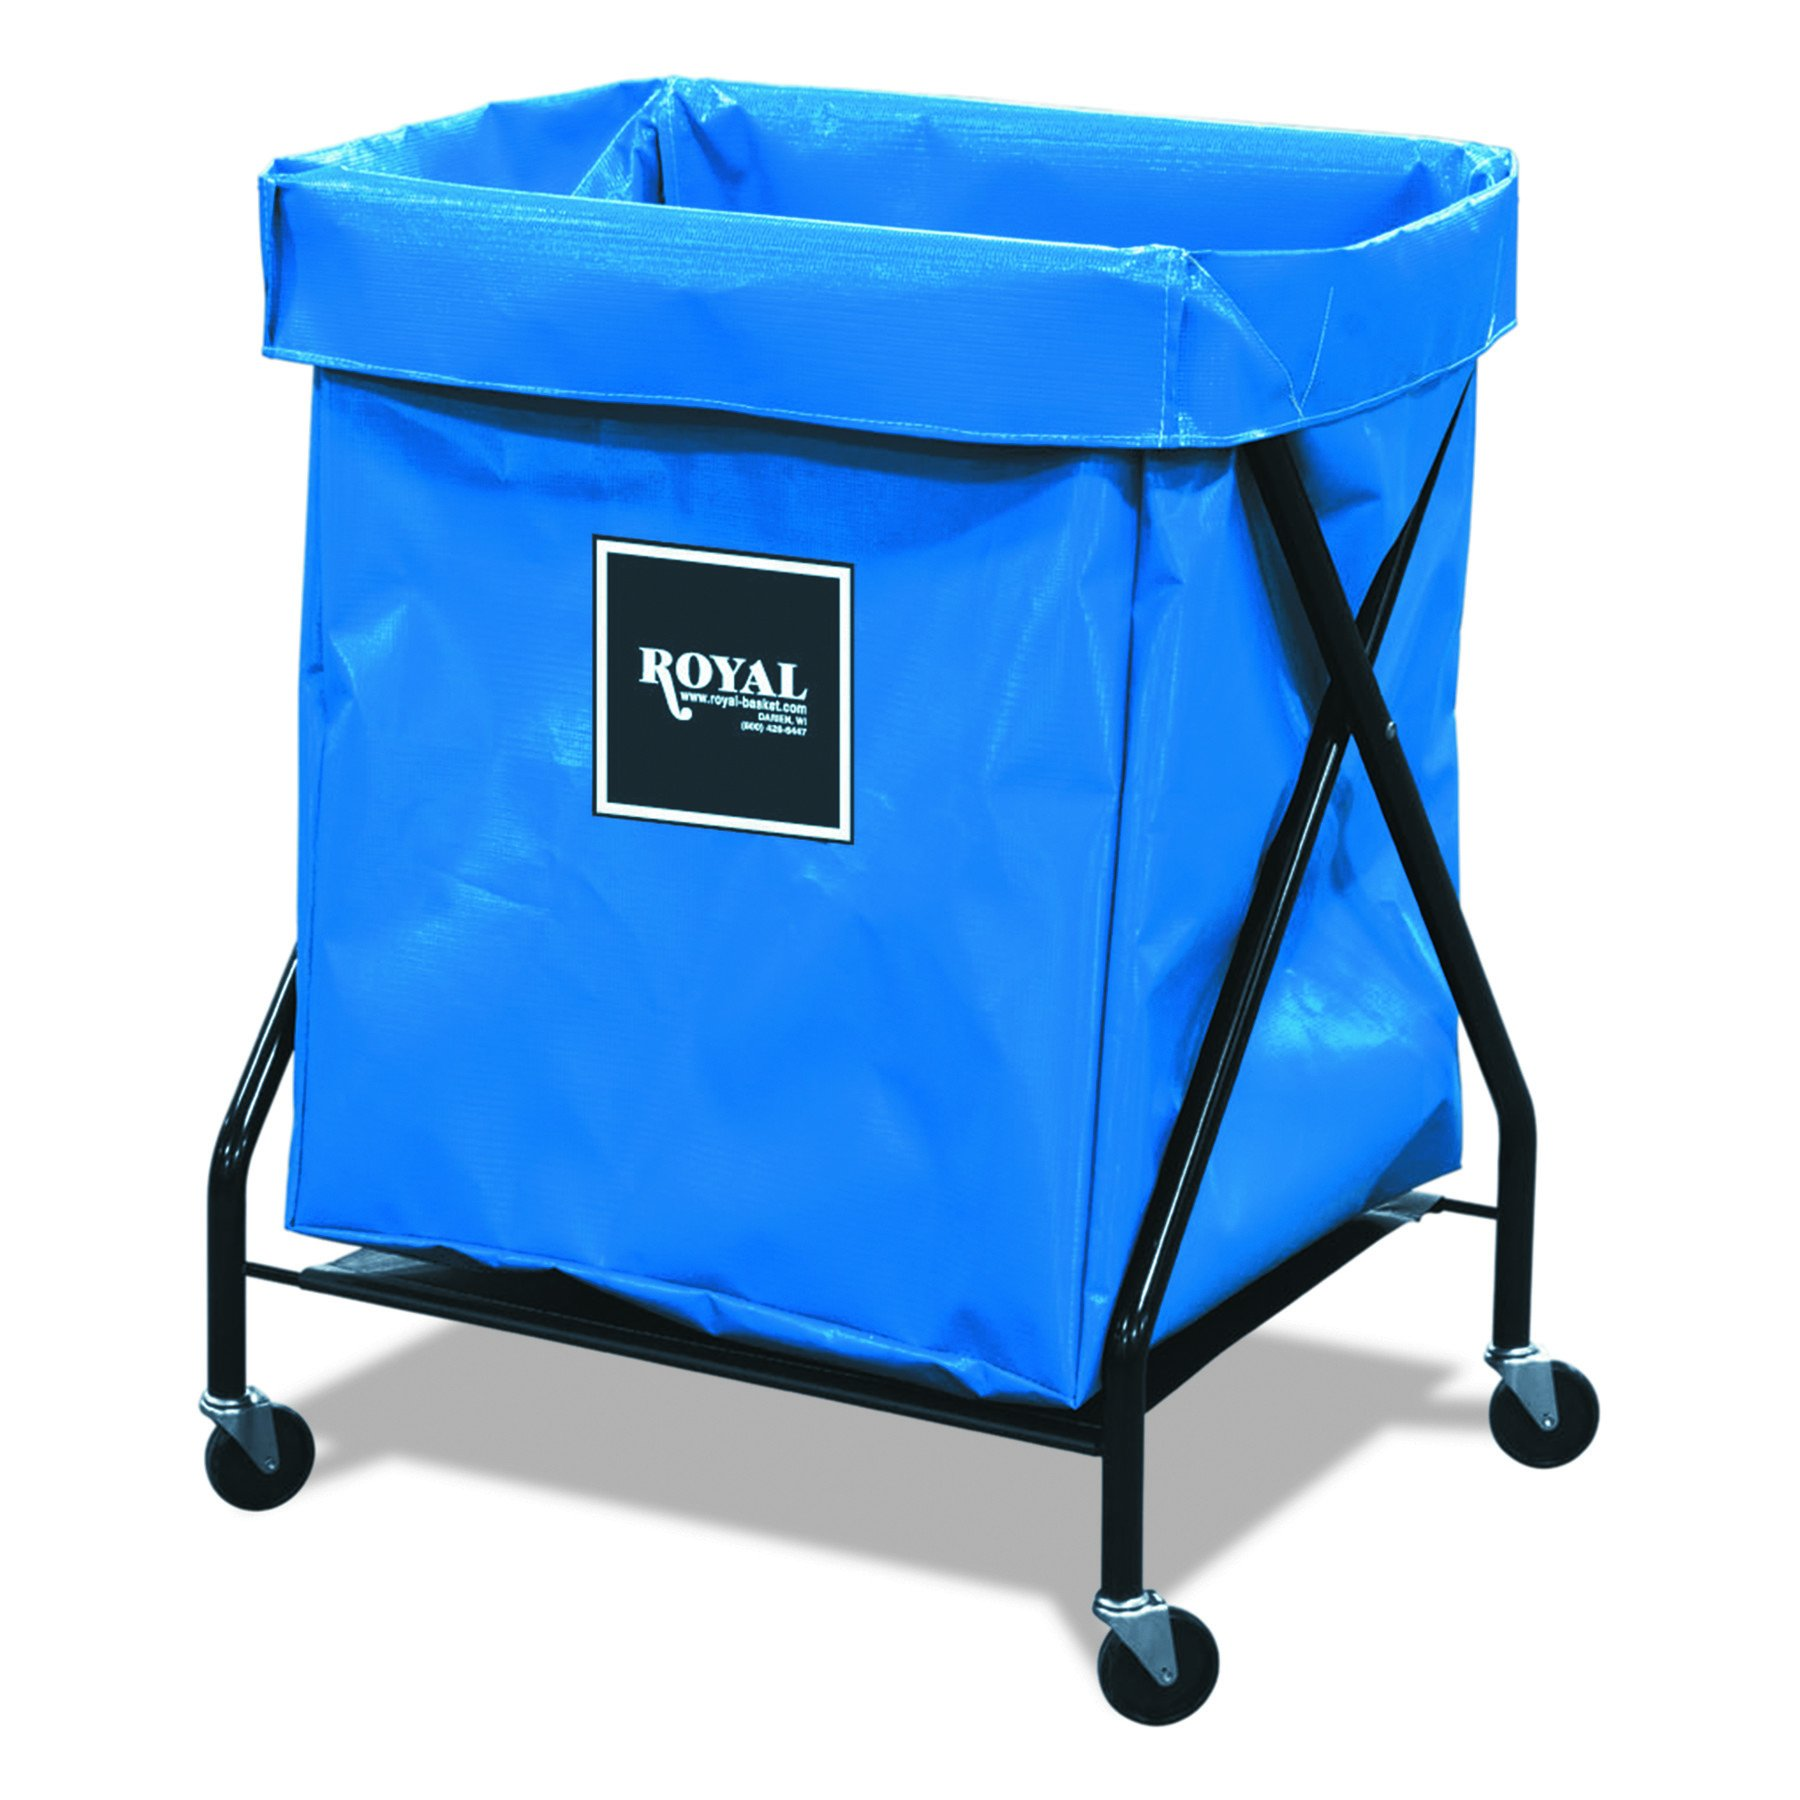 Royal Basket Trucks R08BBXFA3ON RBTR08BBXFA3ON 8 Bushel X-Frame Cart with Vinyl Bag, 21'' x 26'' x 36'', 150 lb. Capacity, Blue